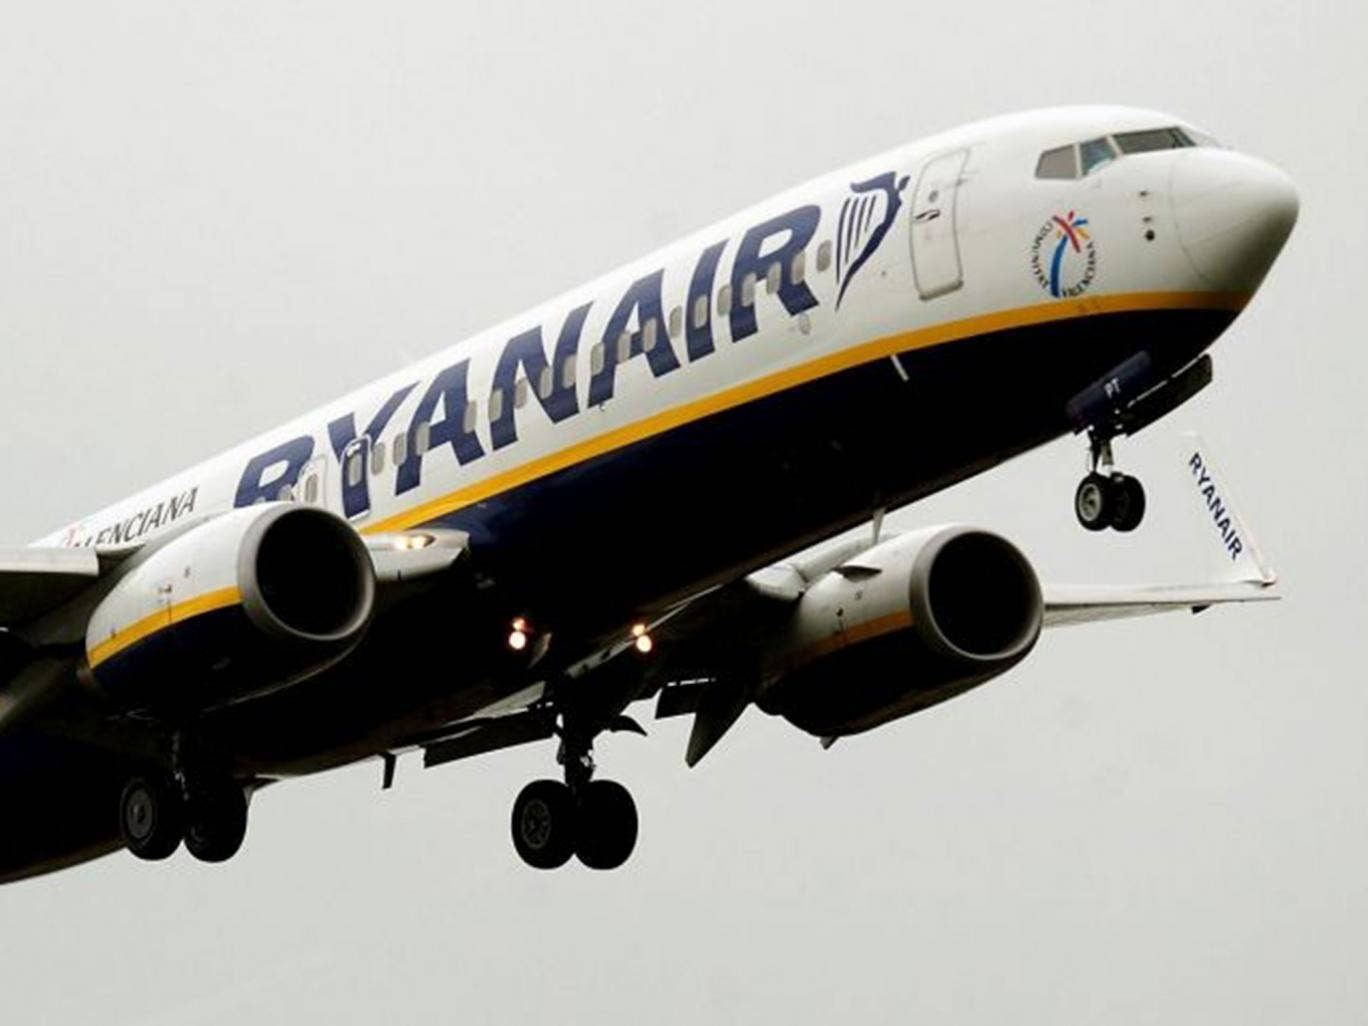 Ryanair has reported a 157% rise in profits since implementing staff politeness